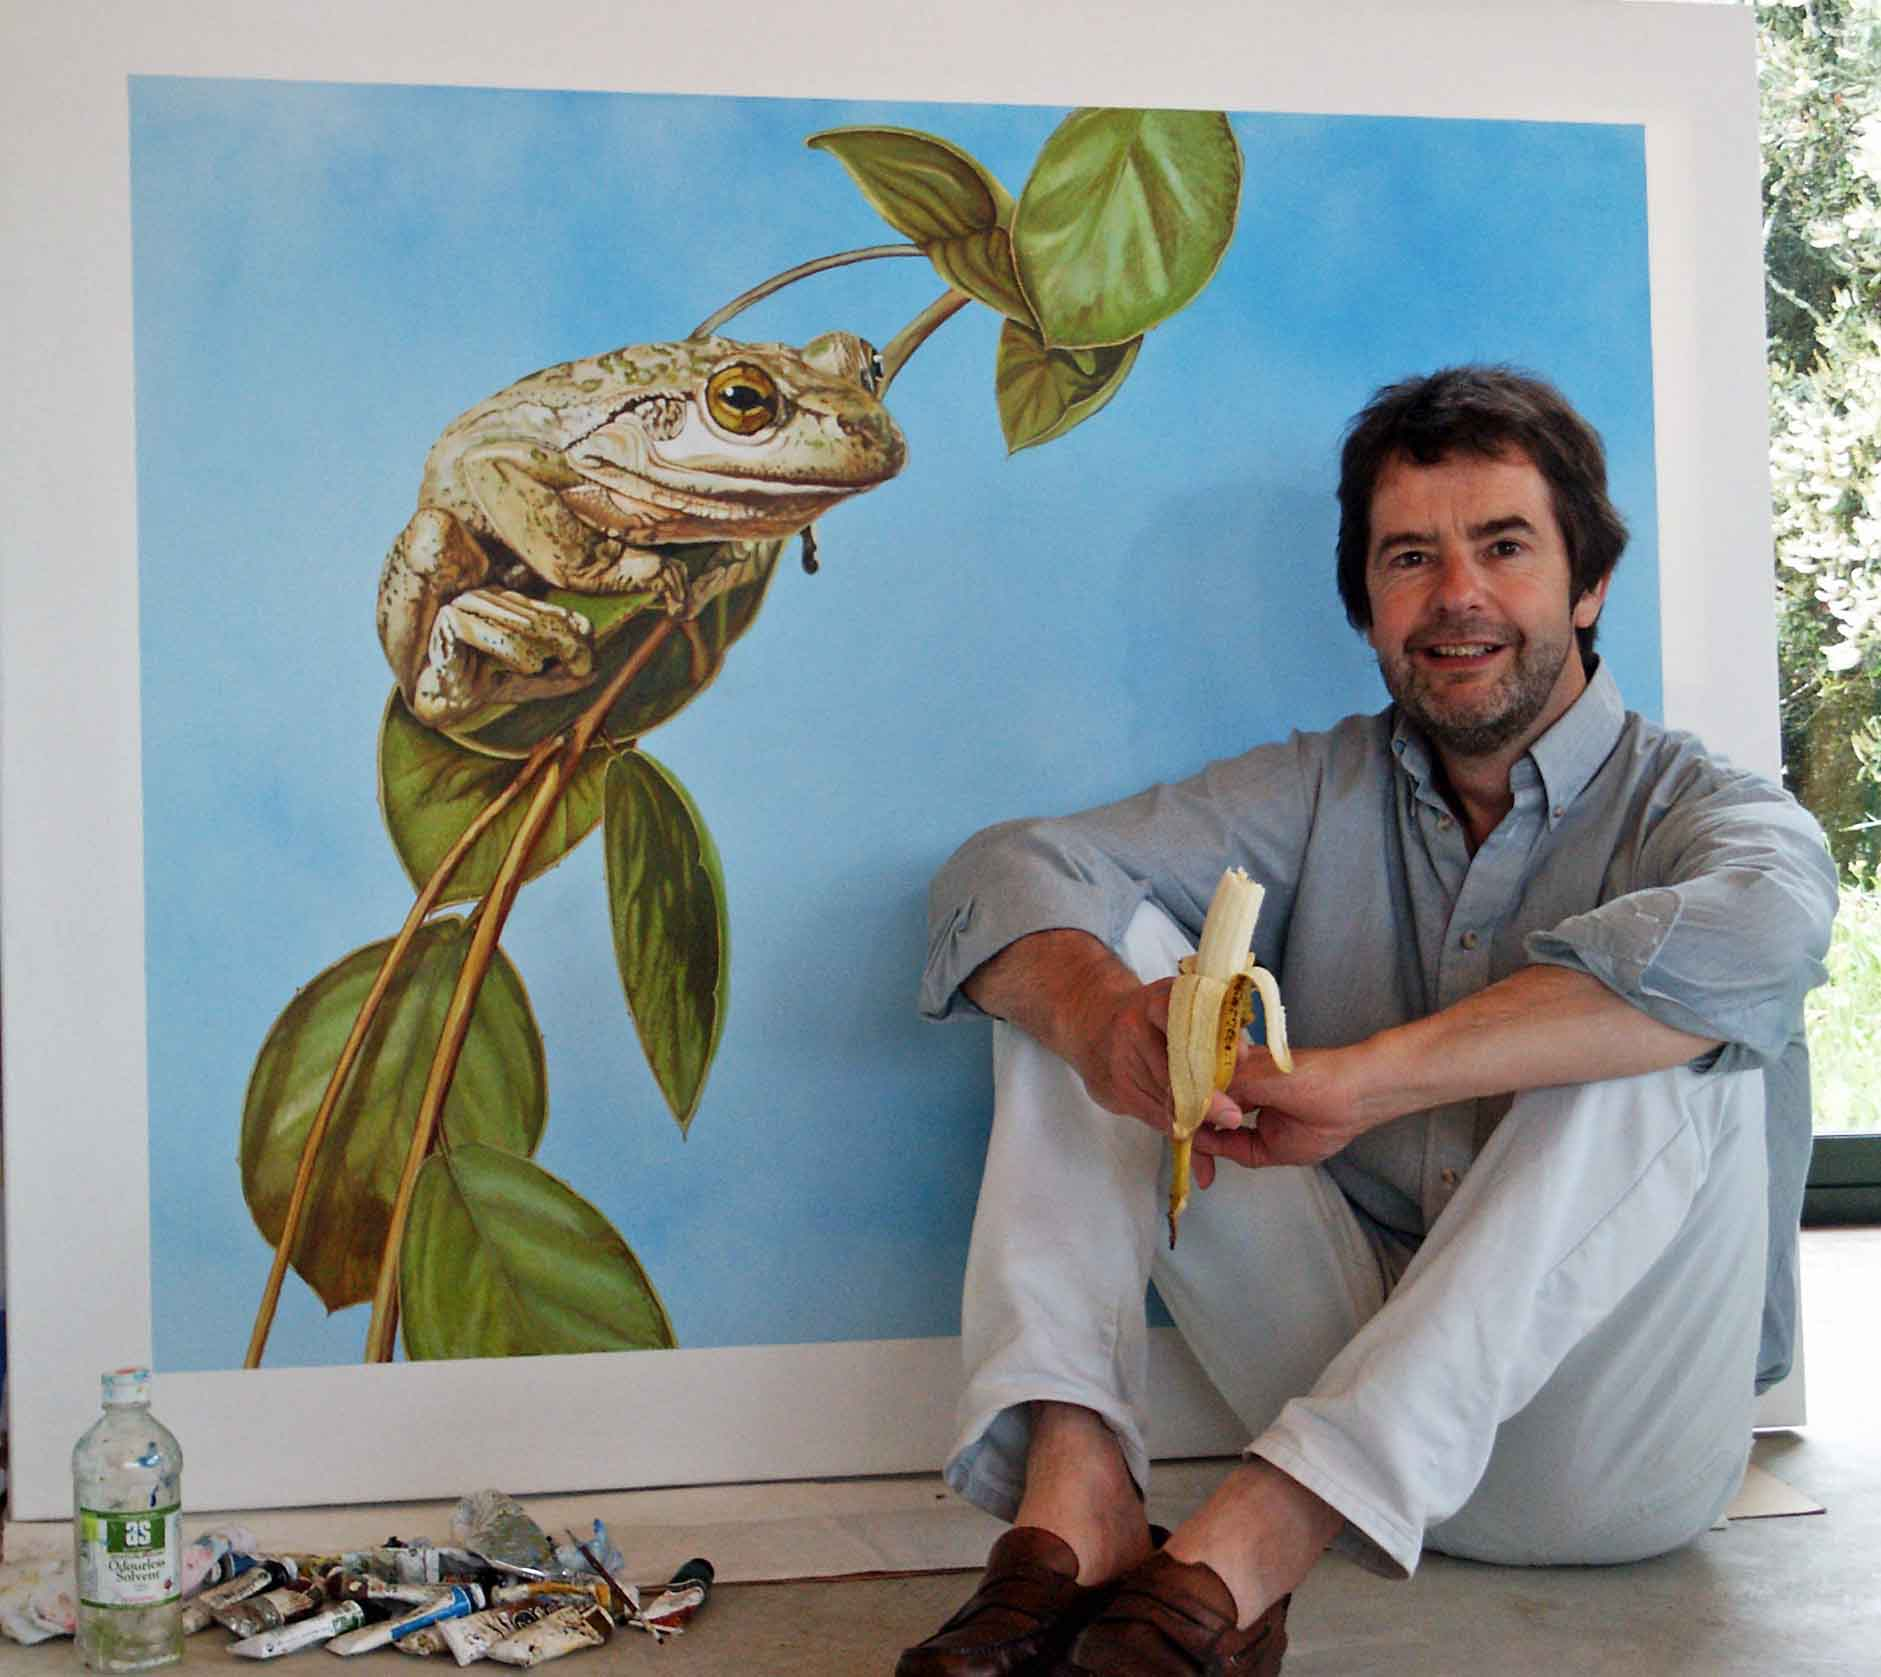 Me again - this time with  bad haircut, a banana and an Australian tree frog.